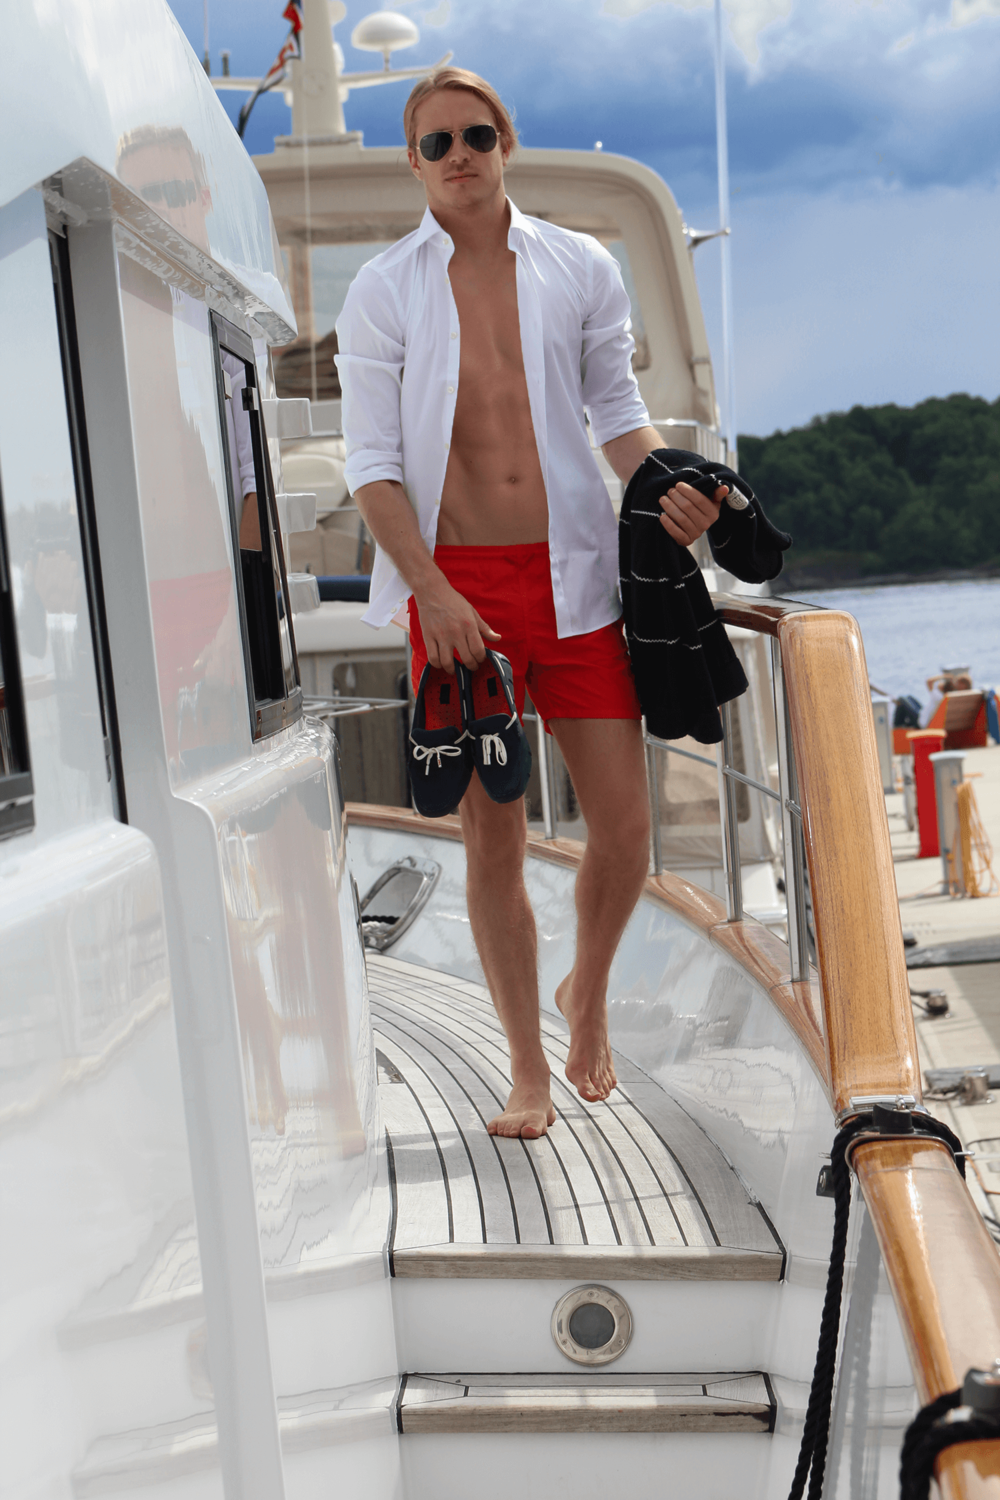 Wearing: Theo Blix Menswear Blogger Scandinavia, Men Blogger Norway,  Men Blogger Sweden , Vilebrequin Moorea solid red Swim Shorts,  Augustus Bernard Slim fit top, Rayban Aviator sunglasses, Swims shoes navy blue and white